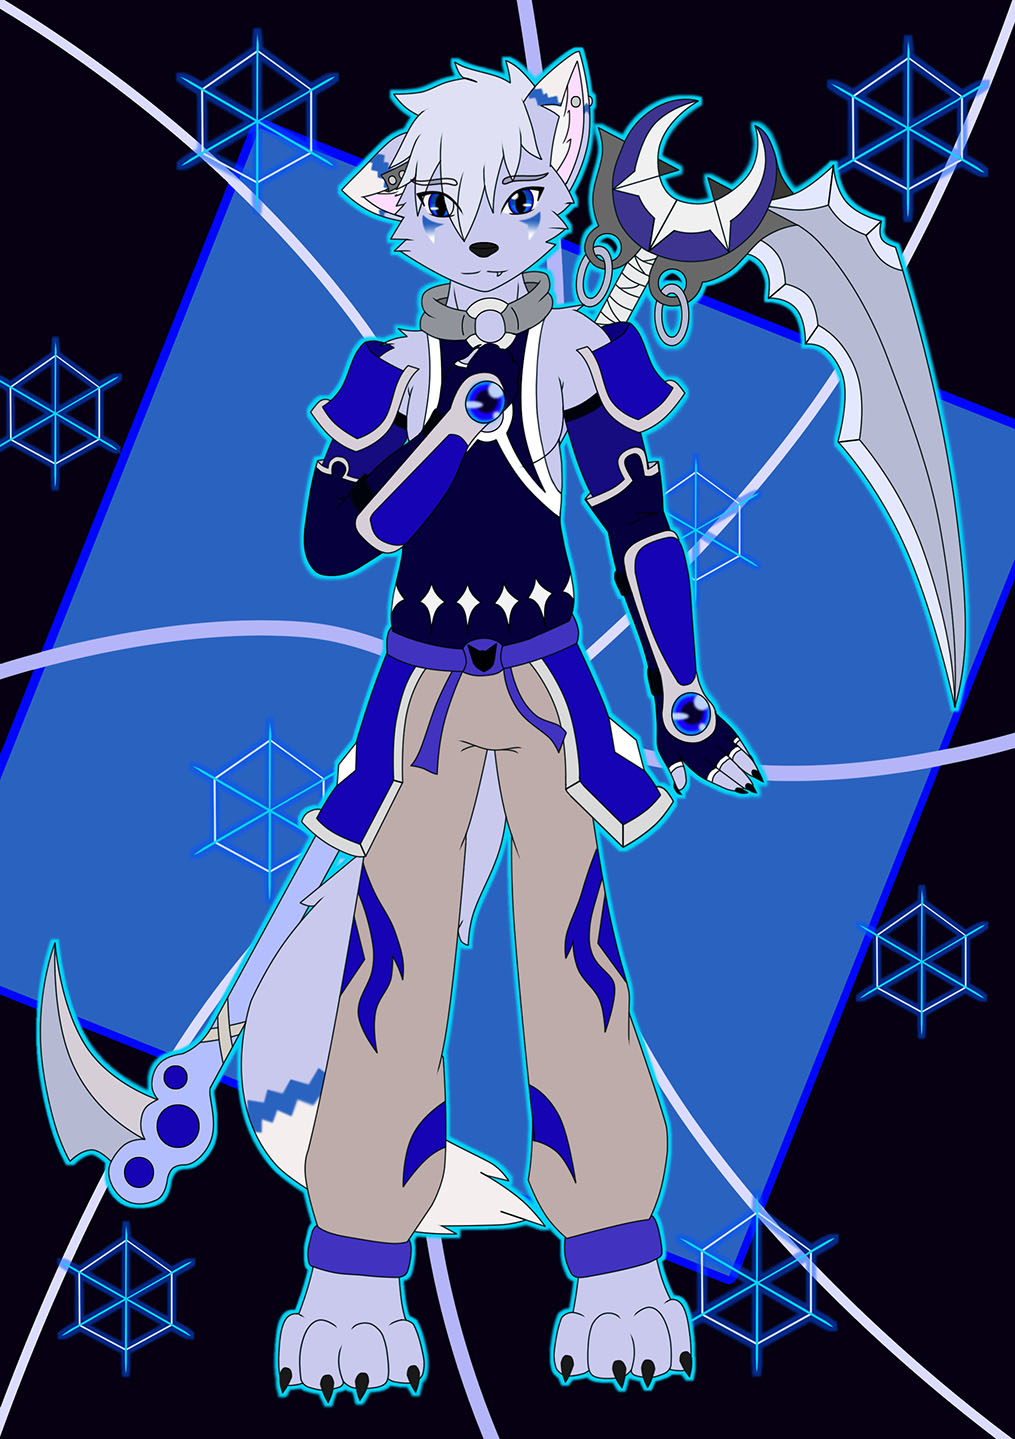 Most recent image: Frost: Crescent Hunter